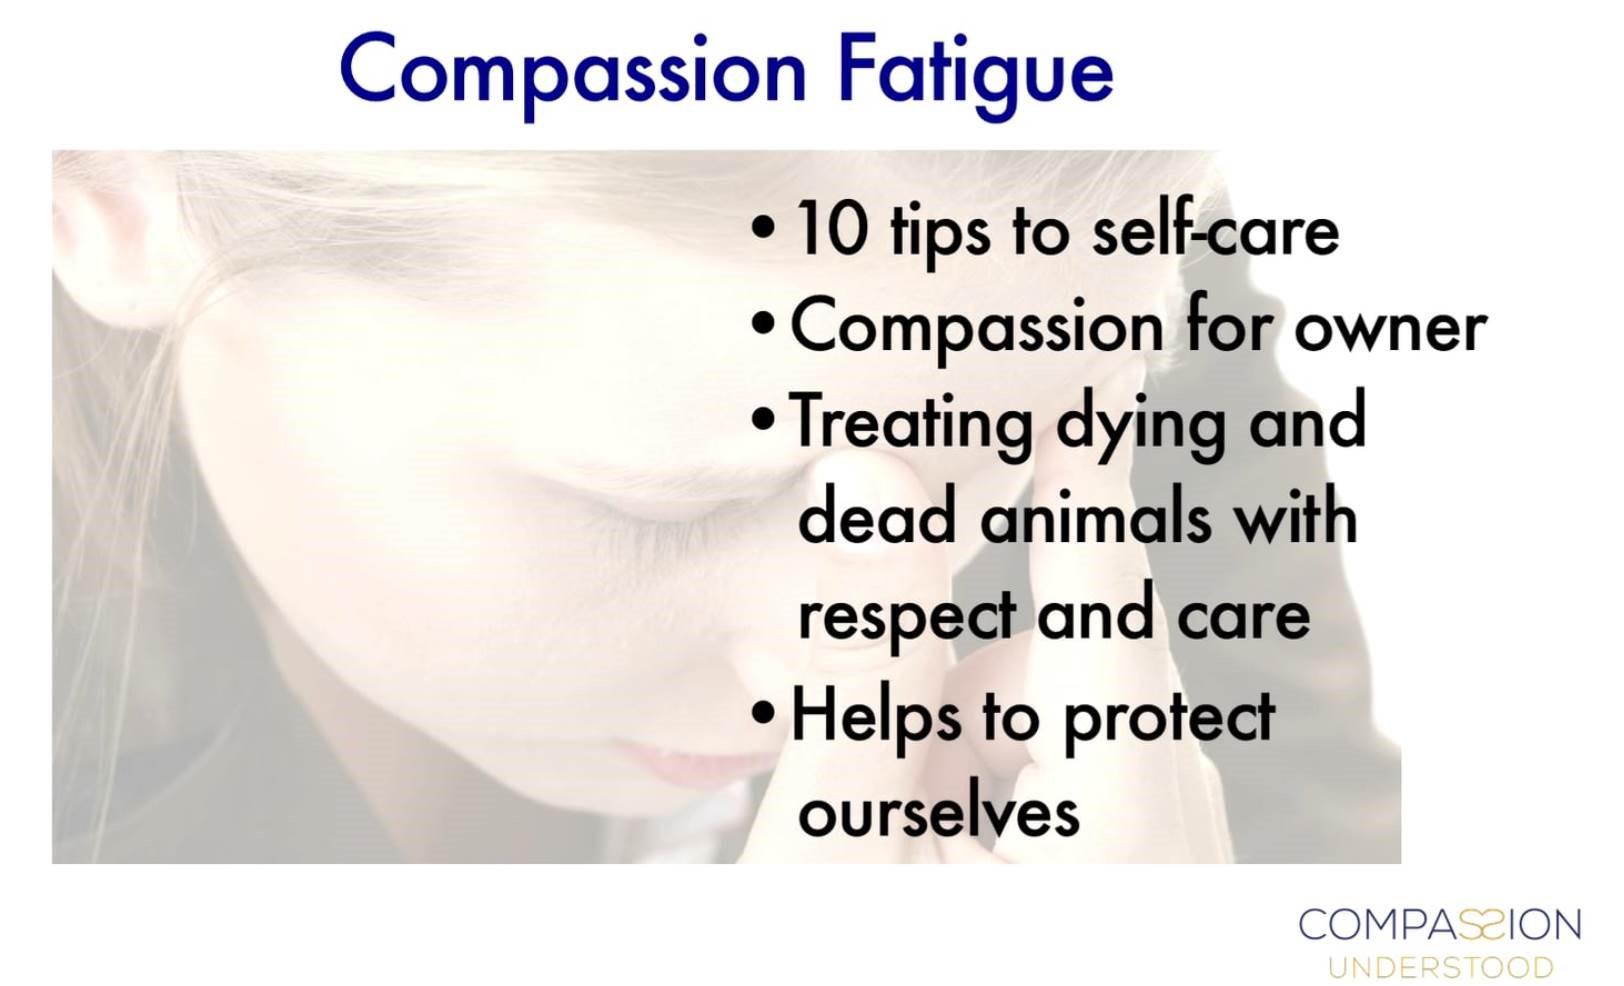 Combatting compassion fatigue: some tips from CU